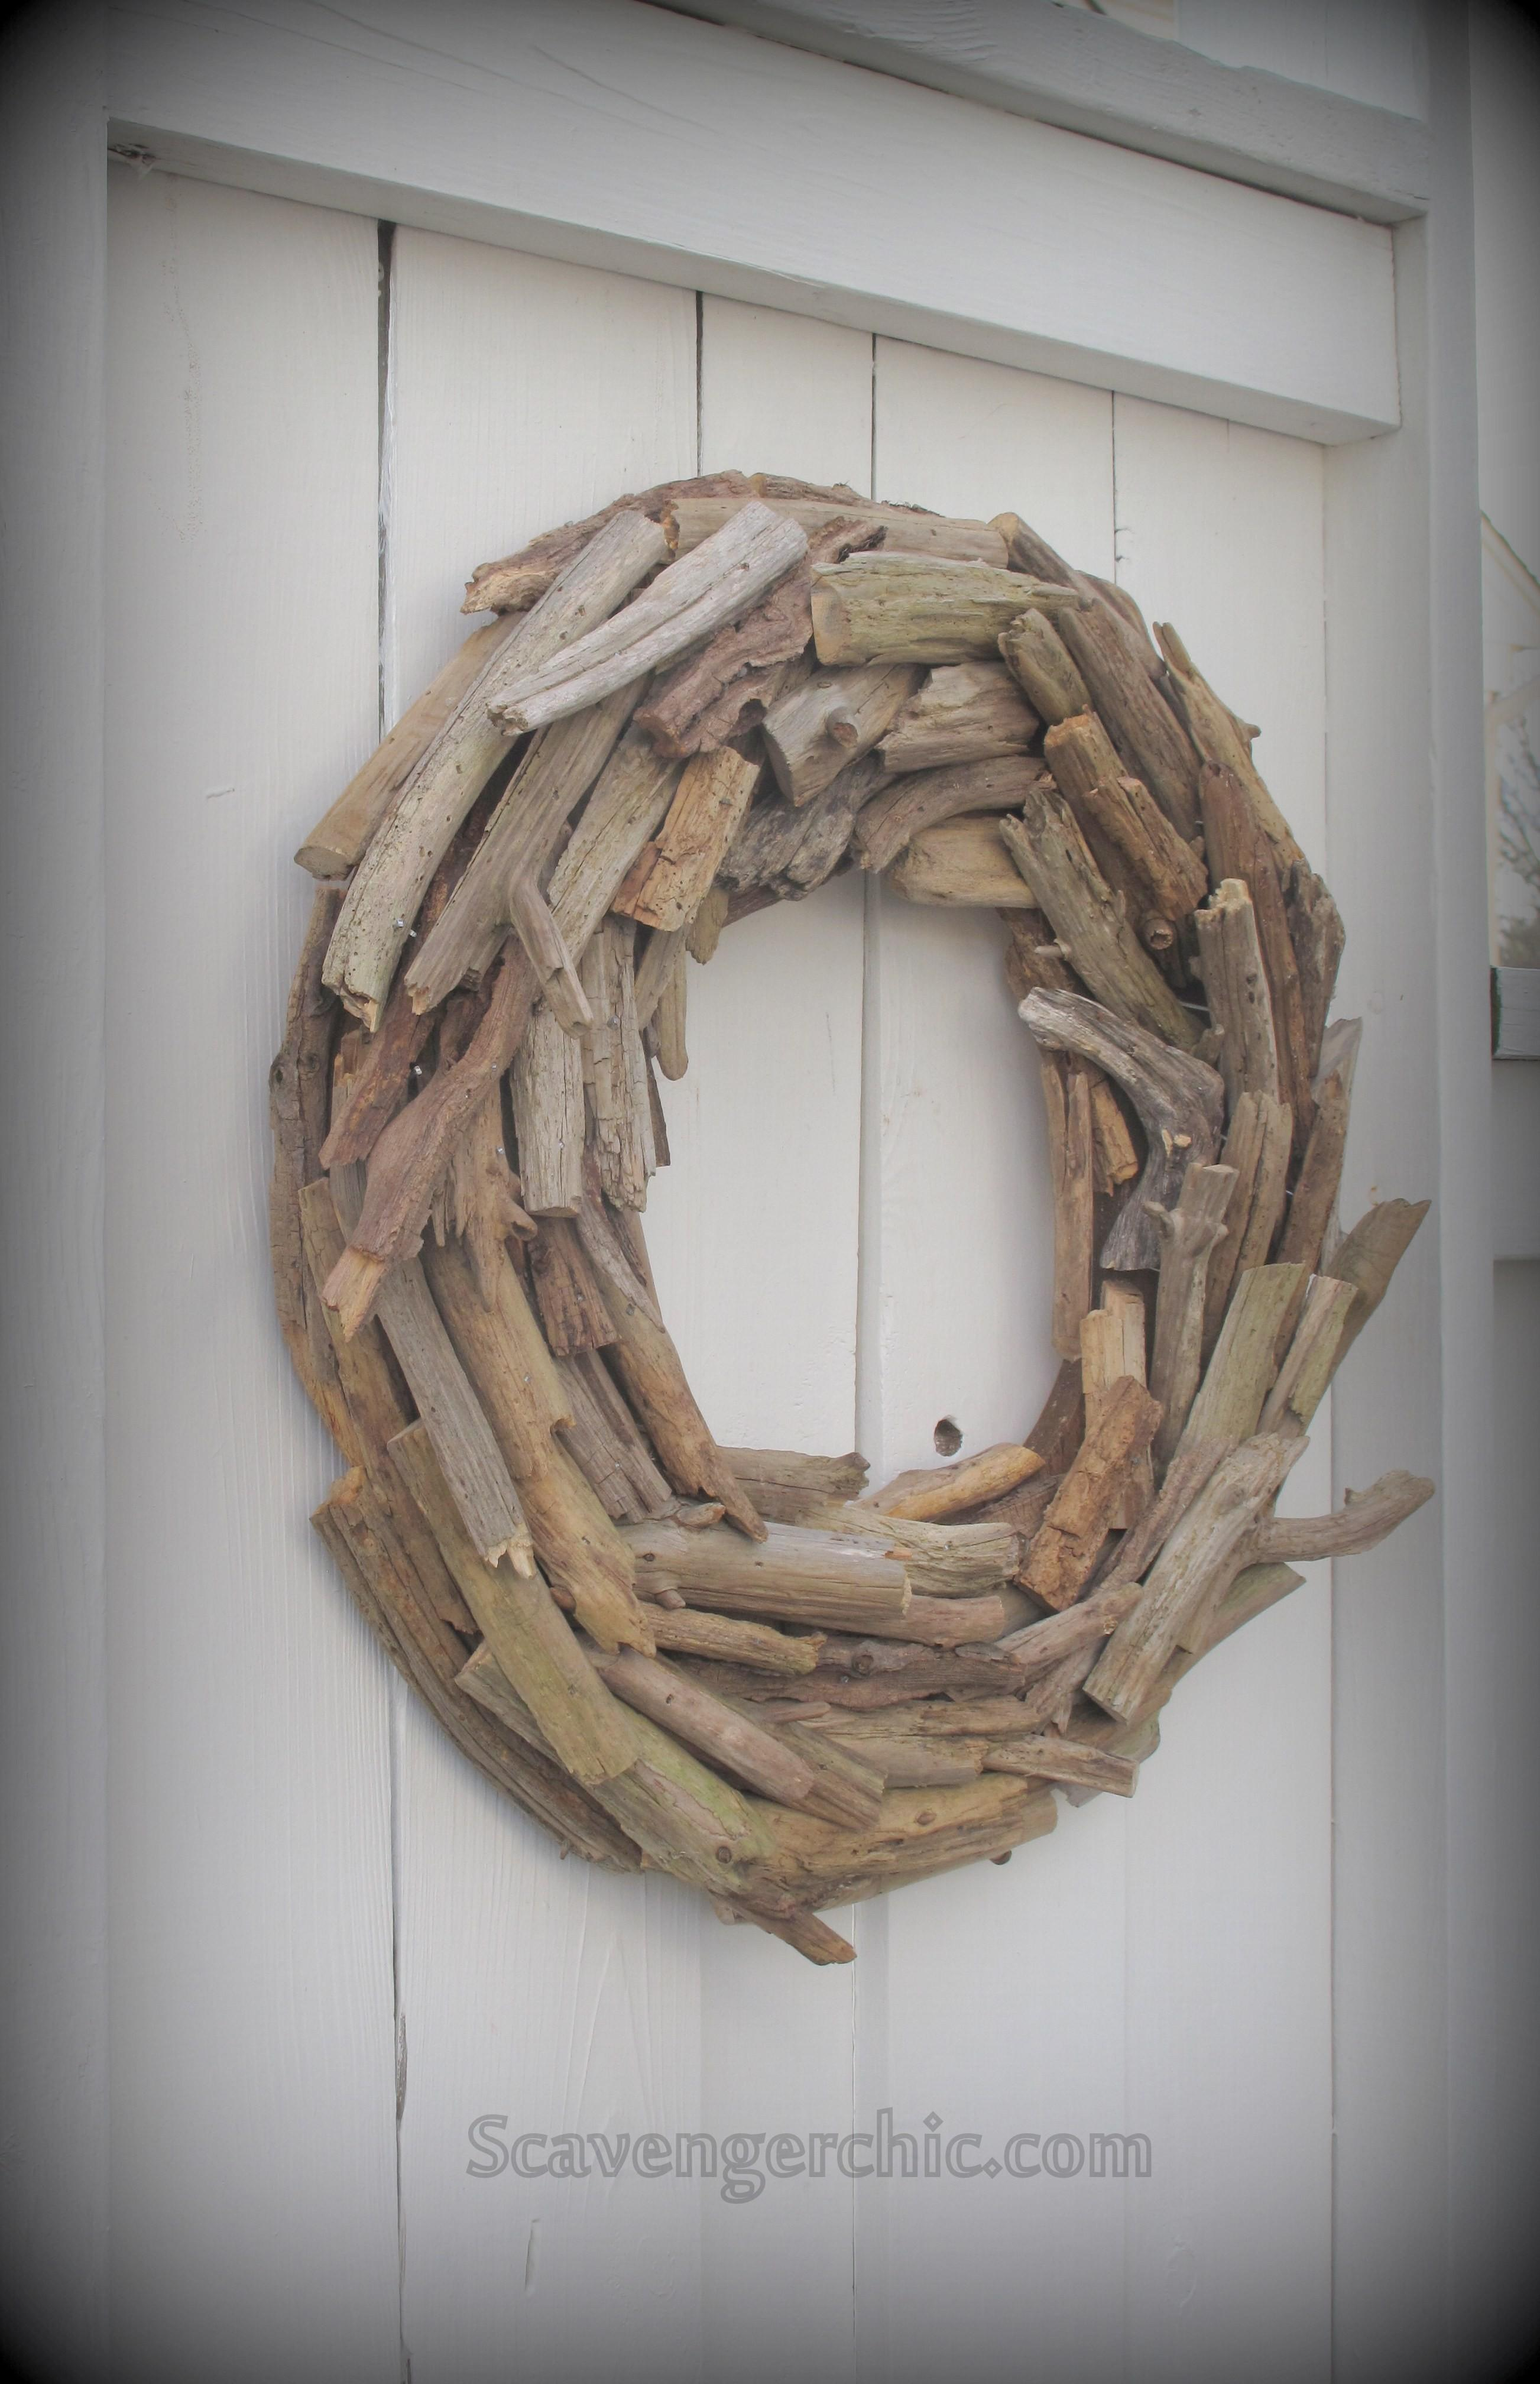 Driftwood Wreath Diy Scavenger Chic